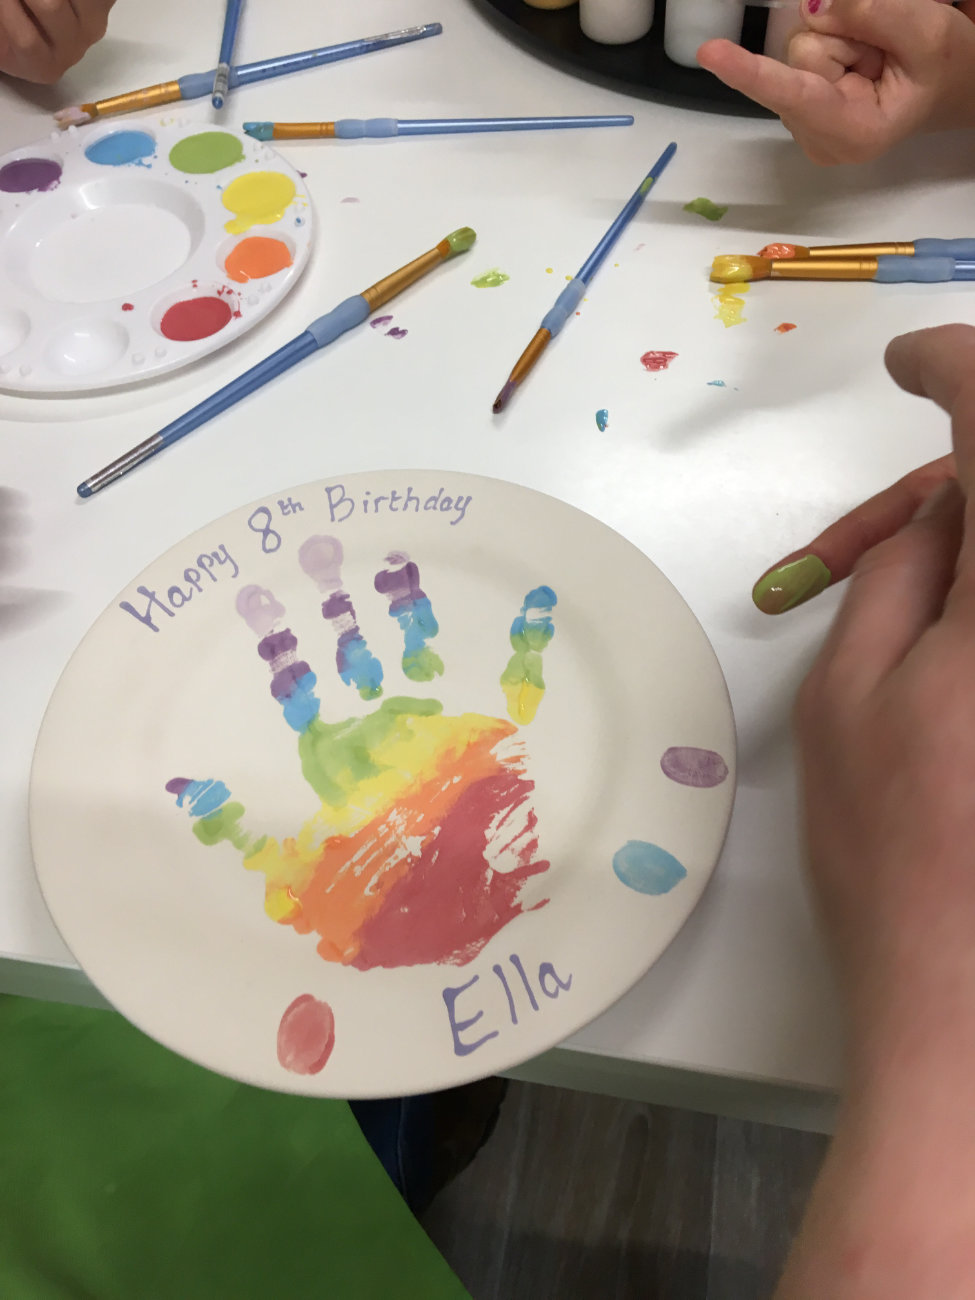 Pottery Painting at home